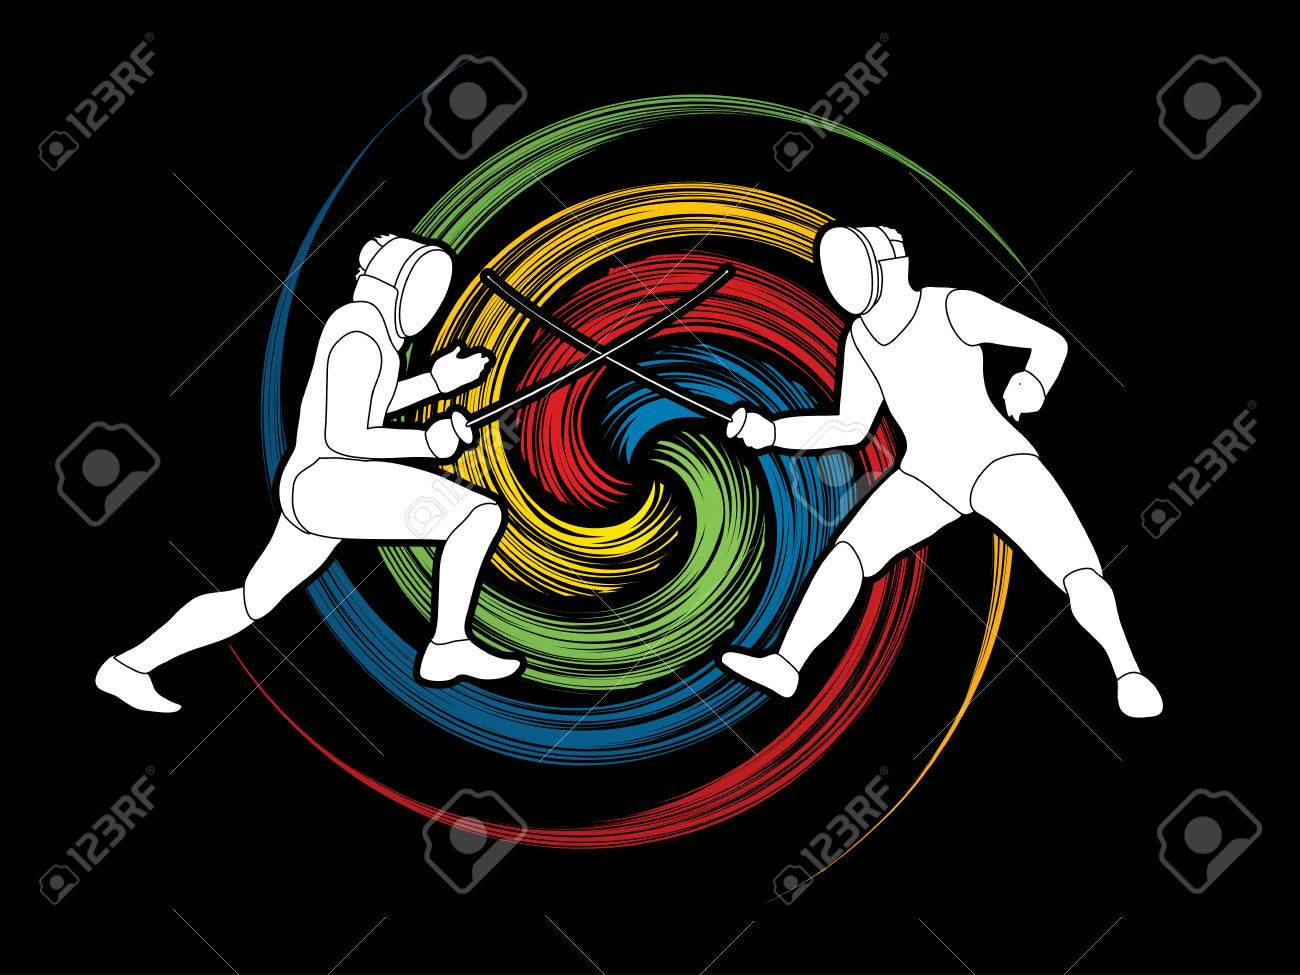 Fencing Fighter Designed On Spin Wheel Background Graphic Vector 1300x975